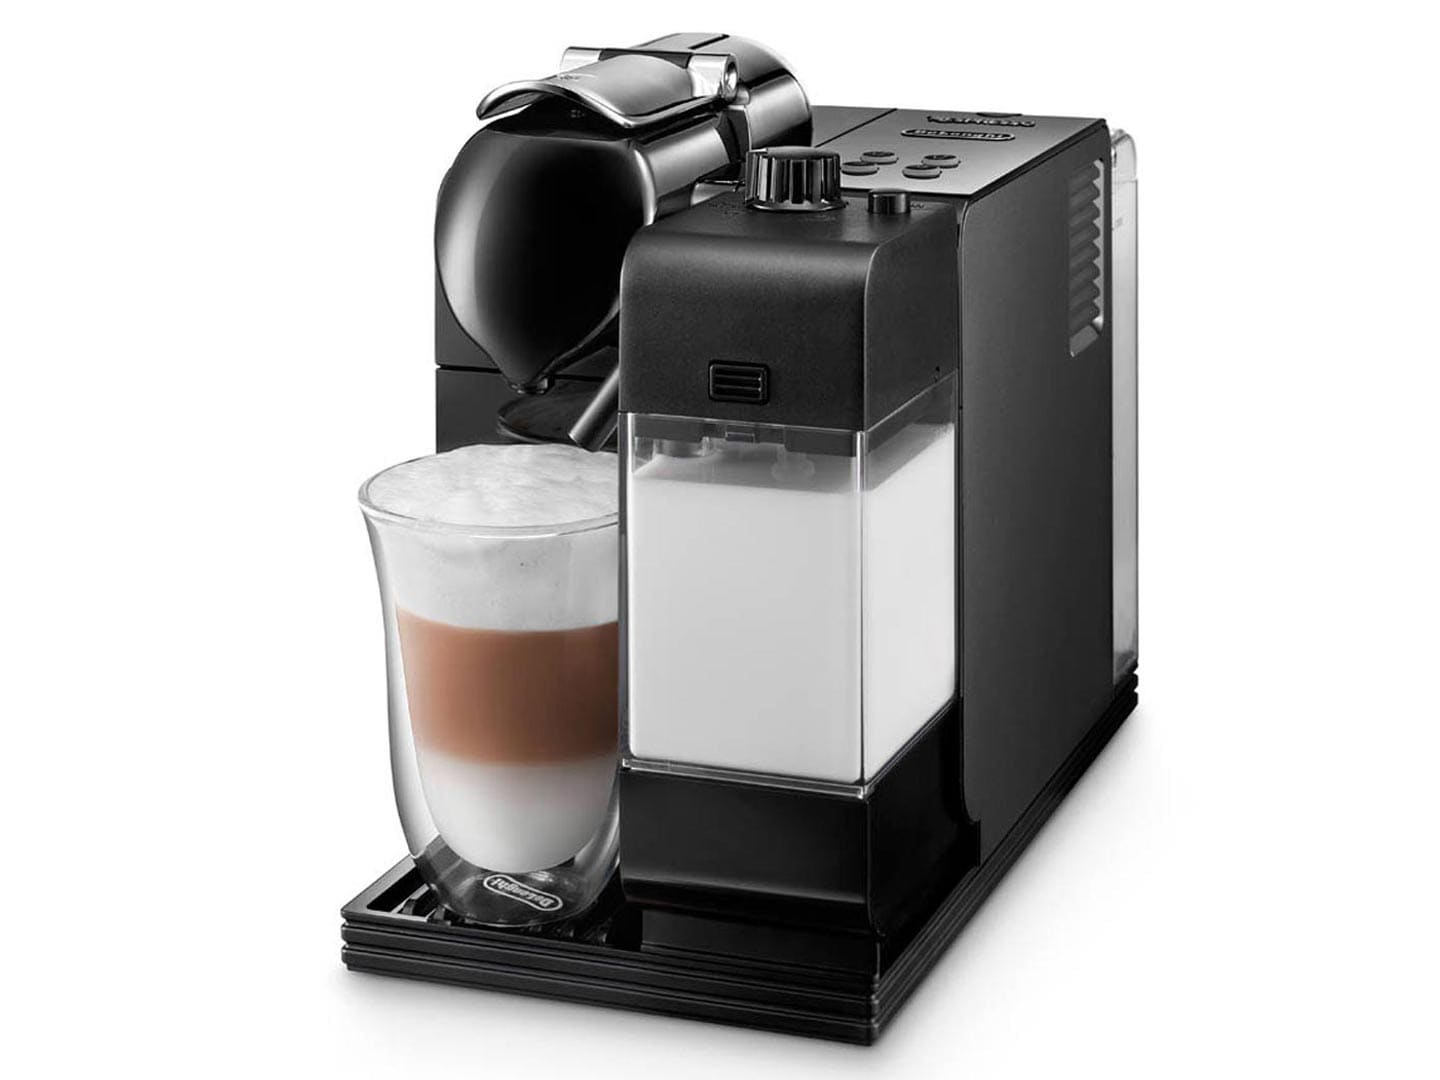 nespresso en520b coffee maker delonghi lattissima black en520bk prices and ratings. Black Bedroom Furniture Sets. Home Design Ideas